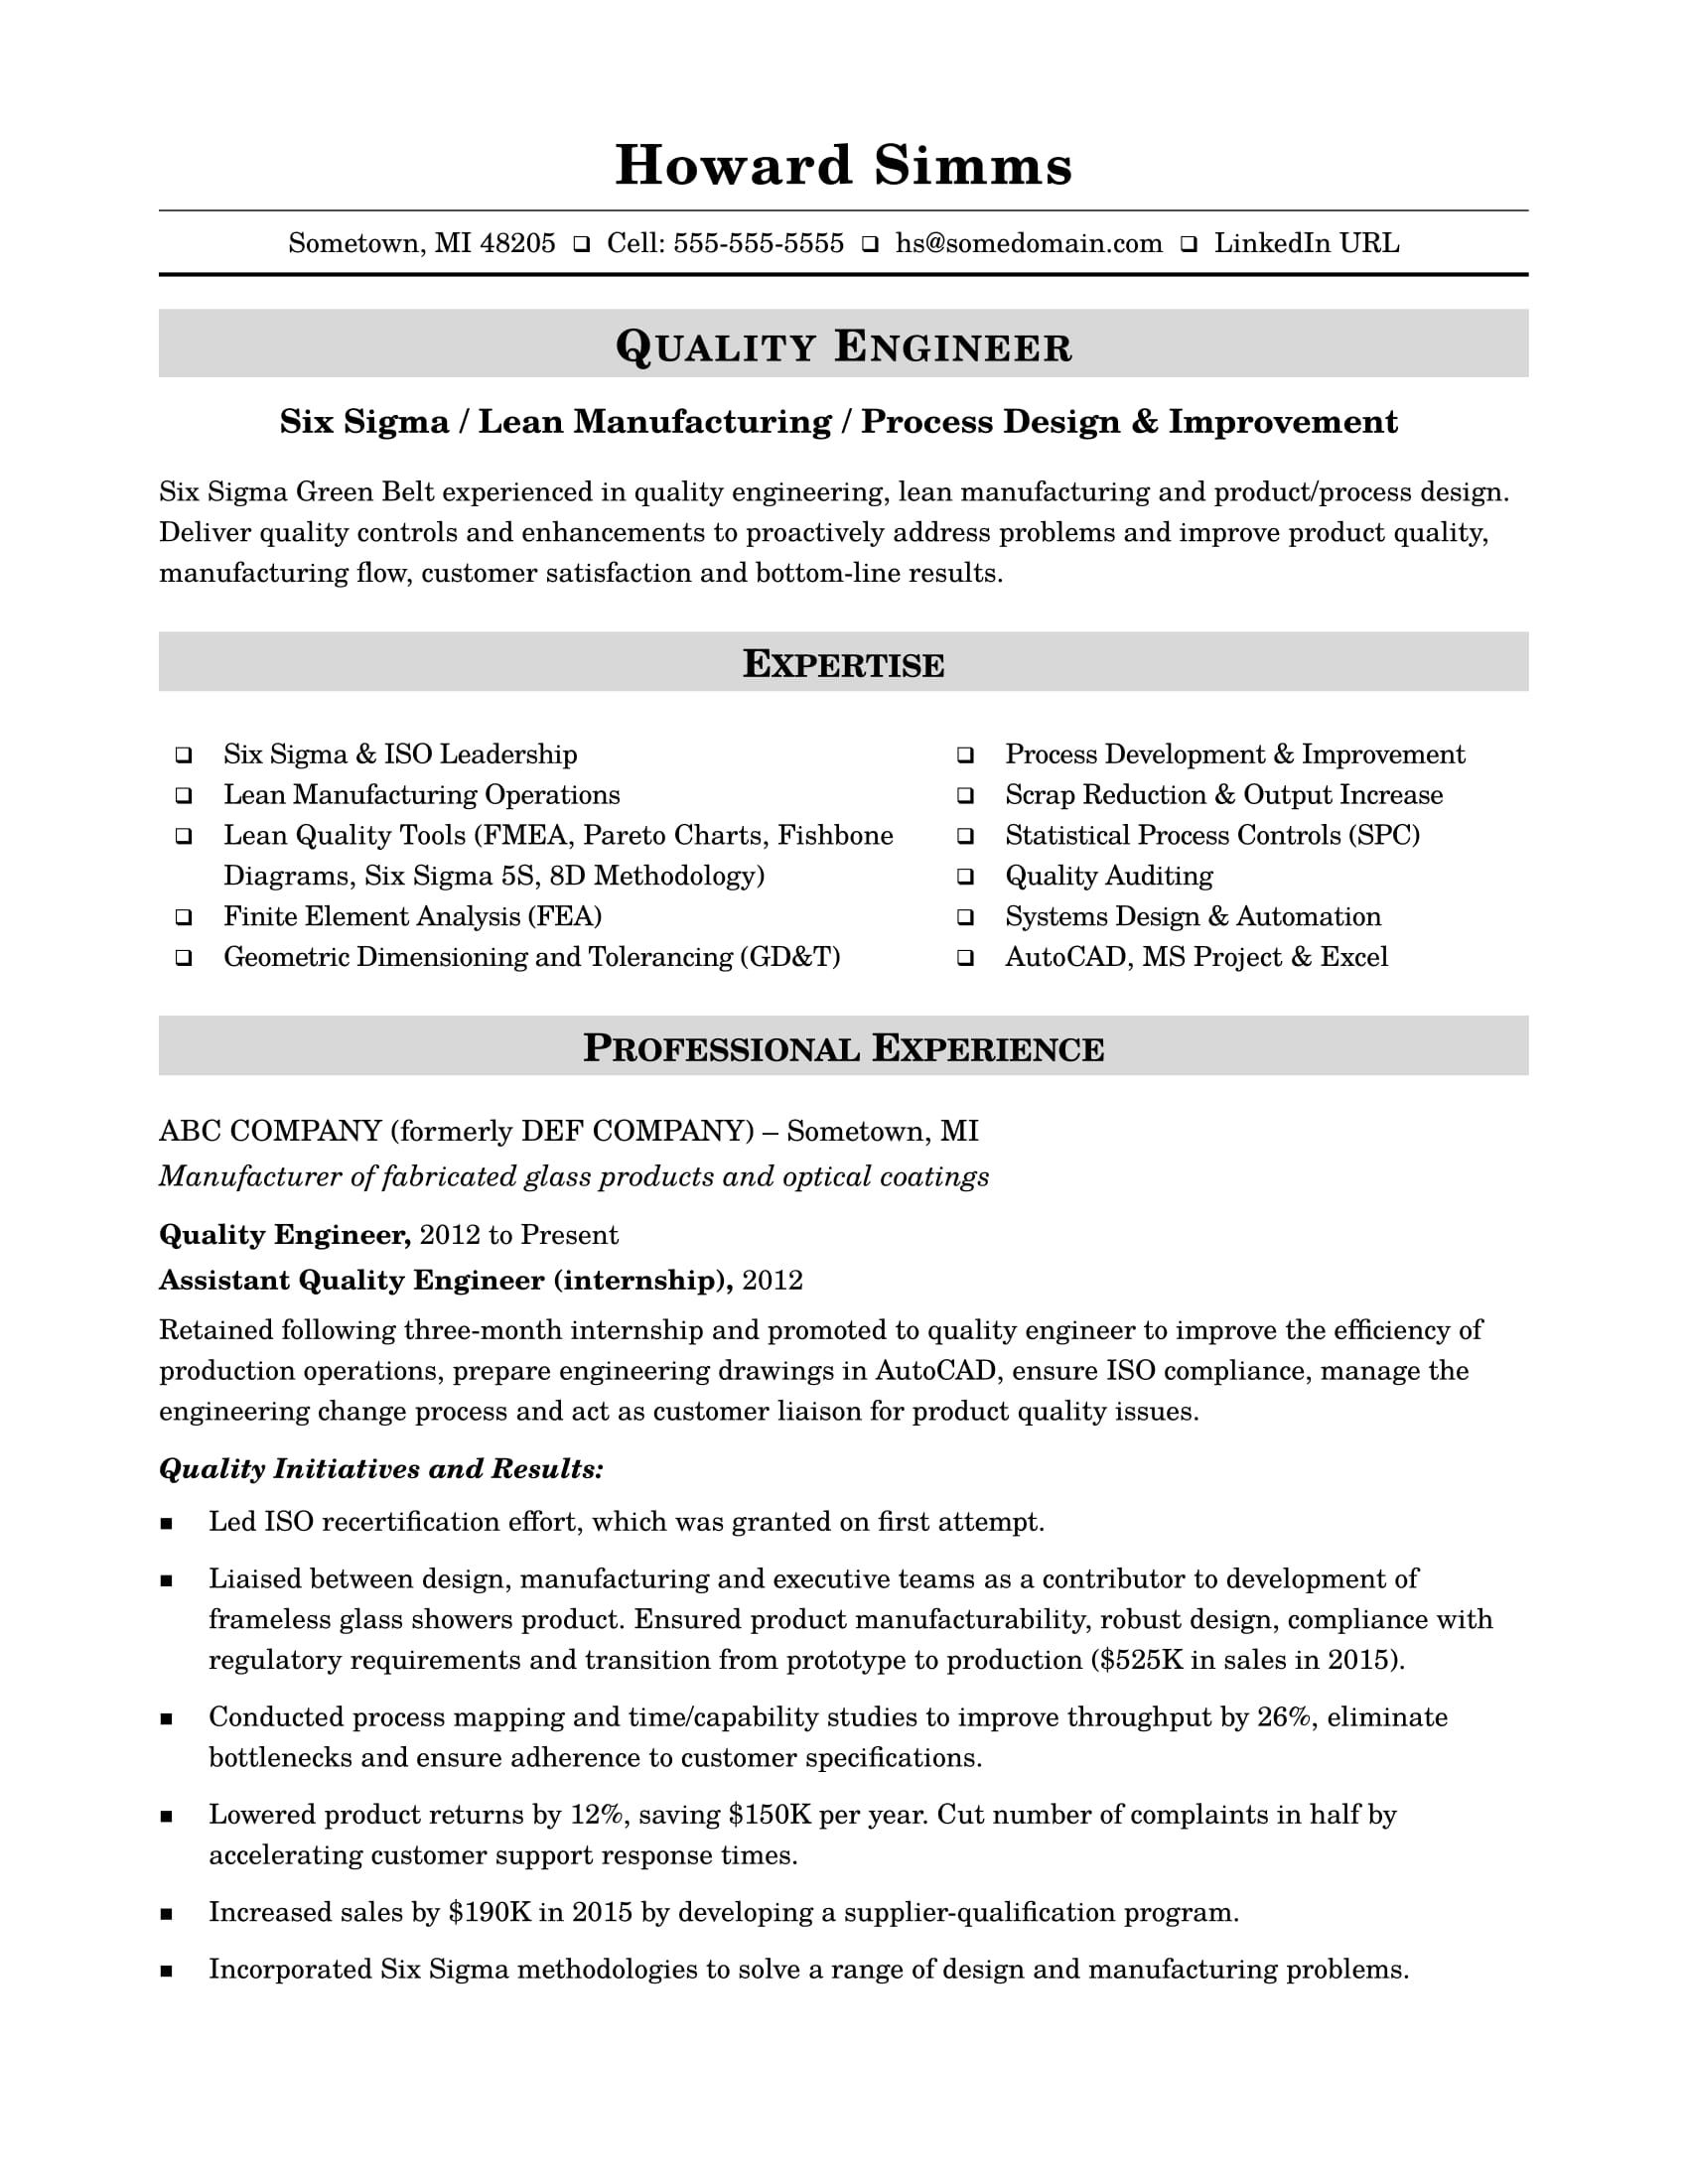 Quality Engineer Resume Doc Huroncountychamber Com